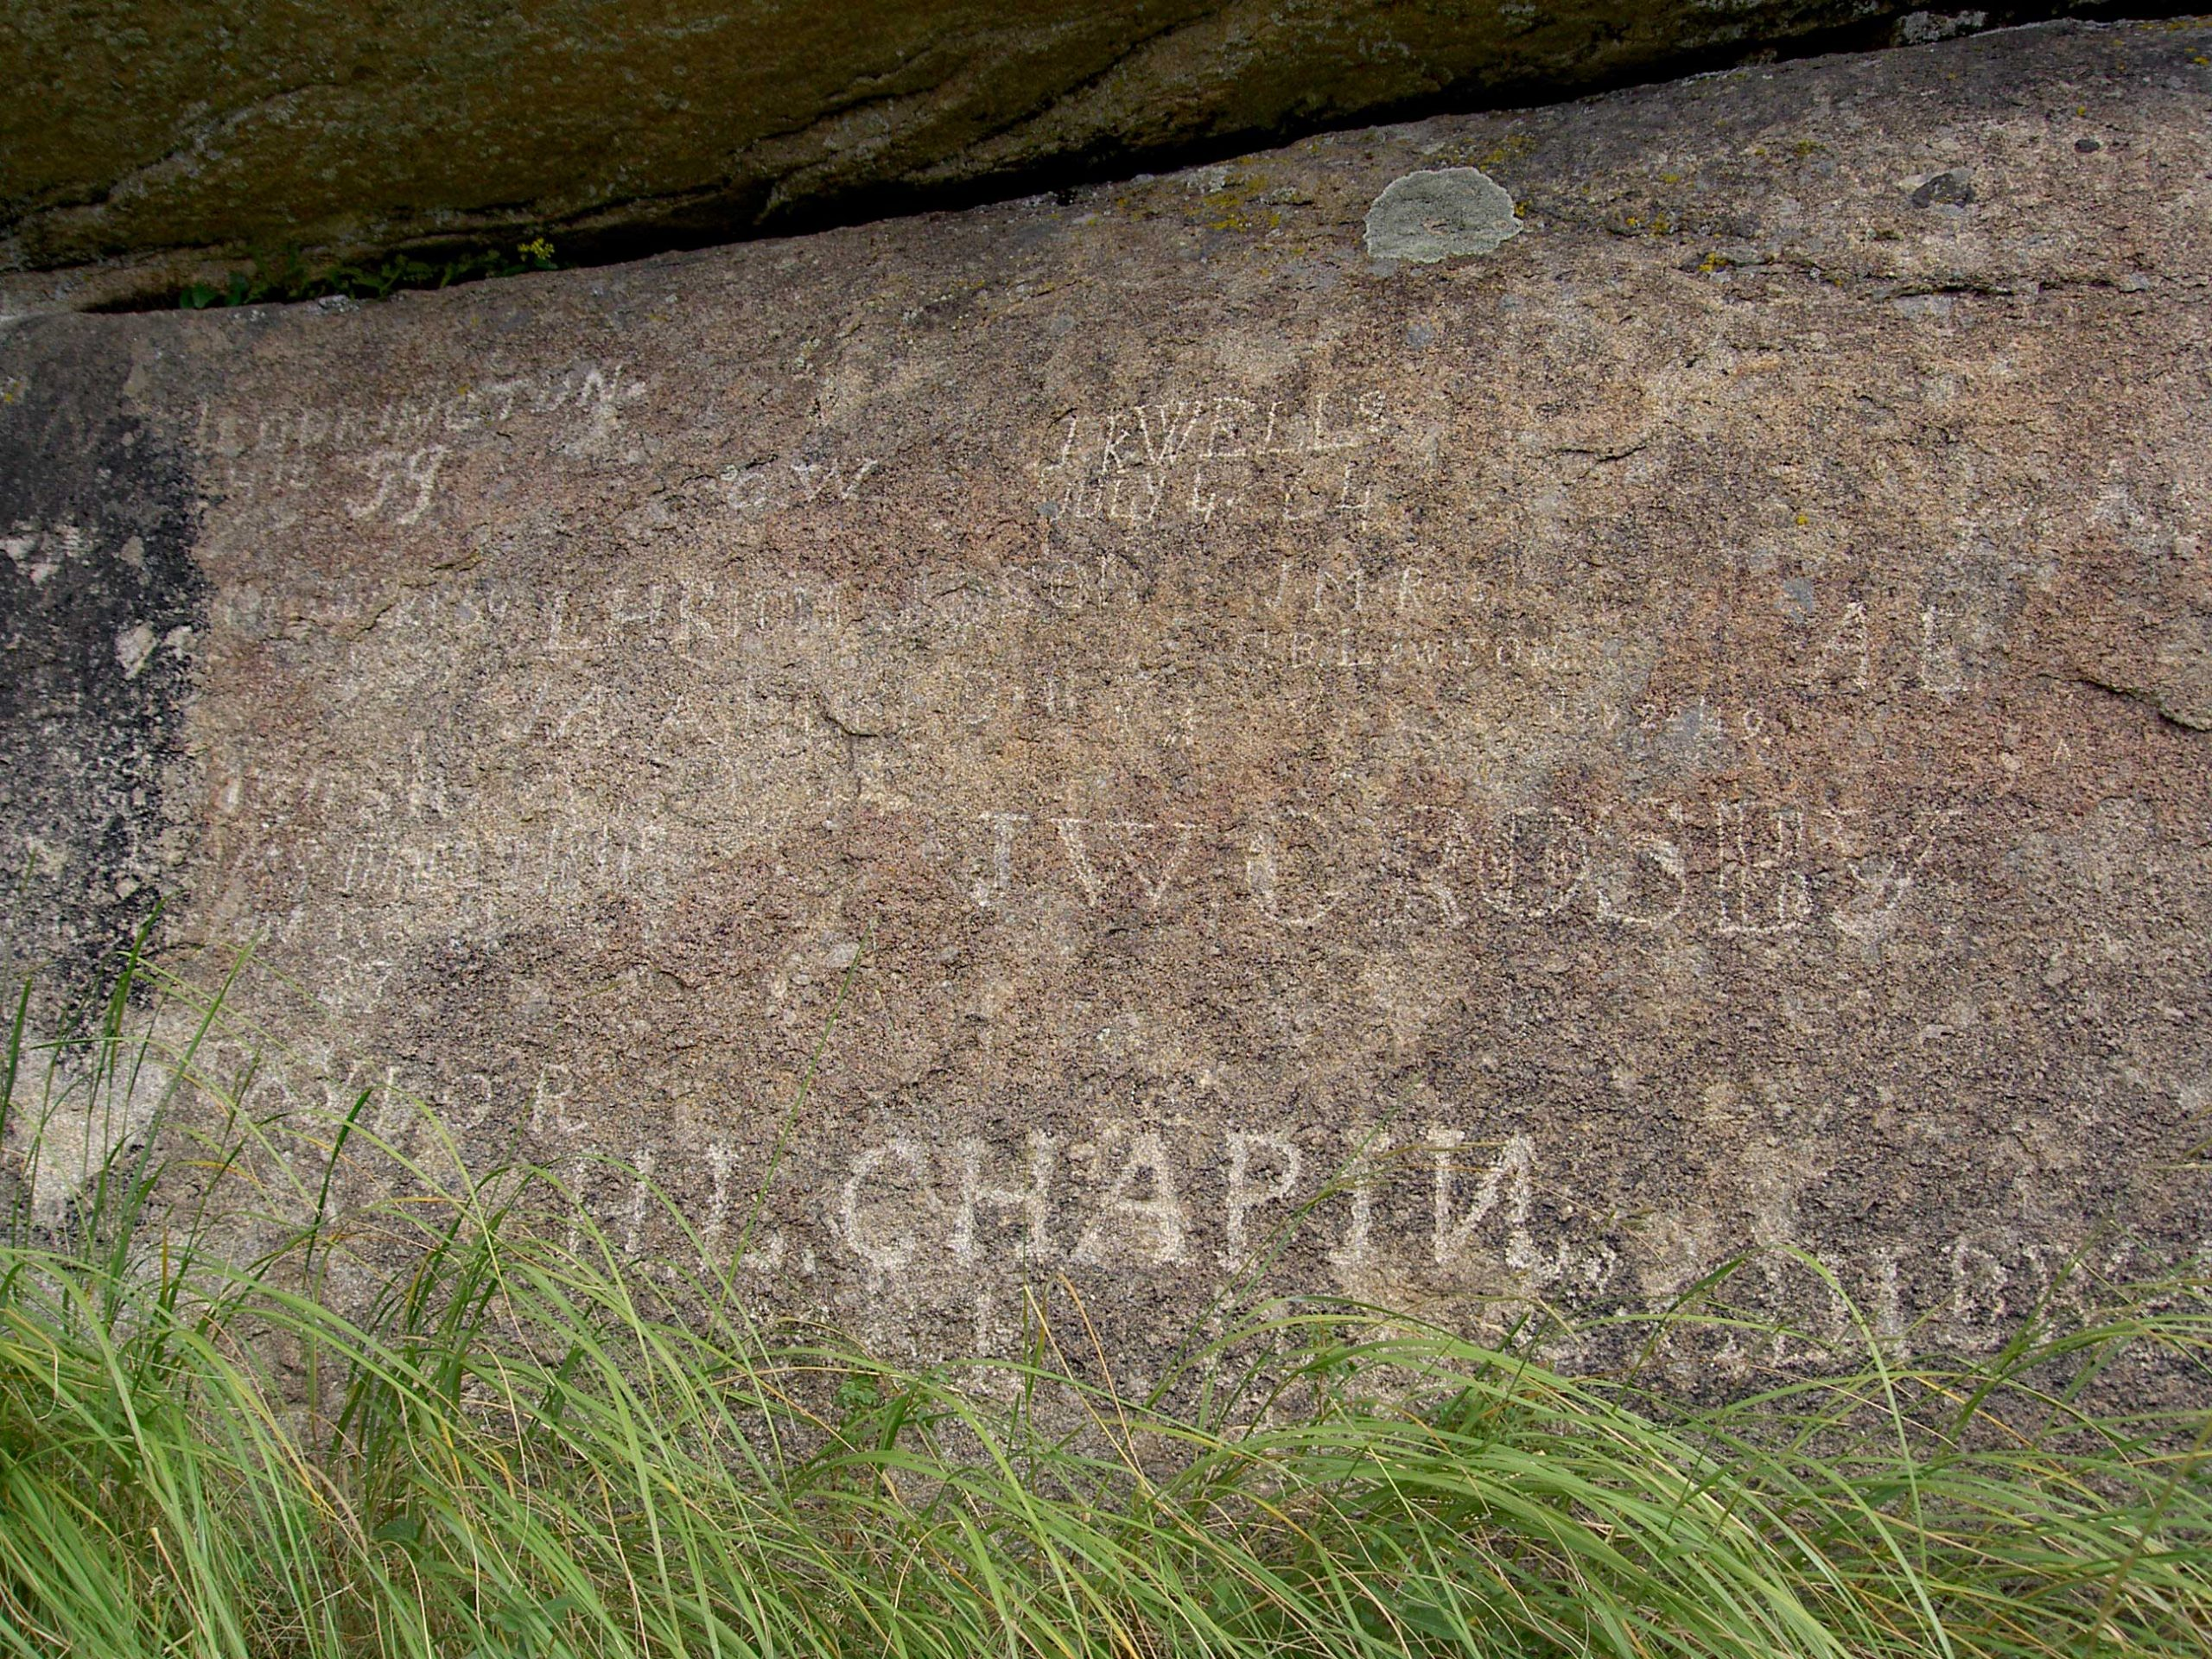 Names carved into Independence Rock